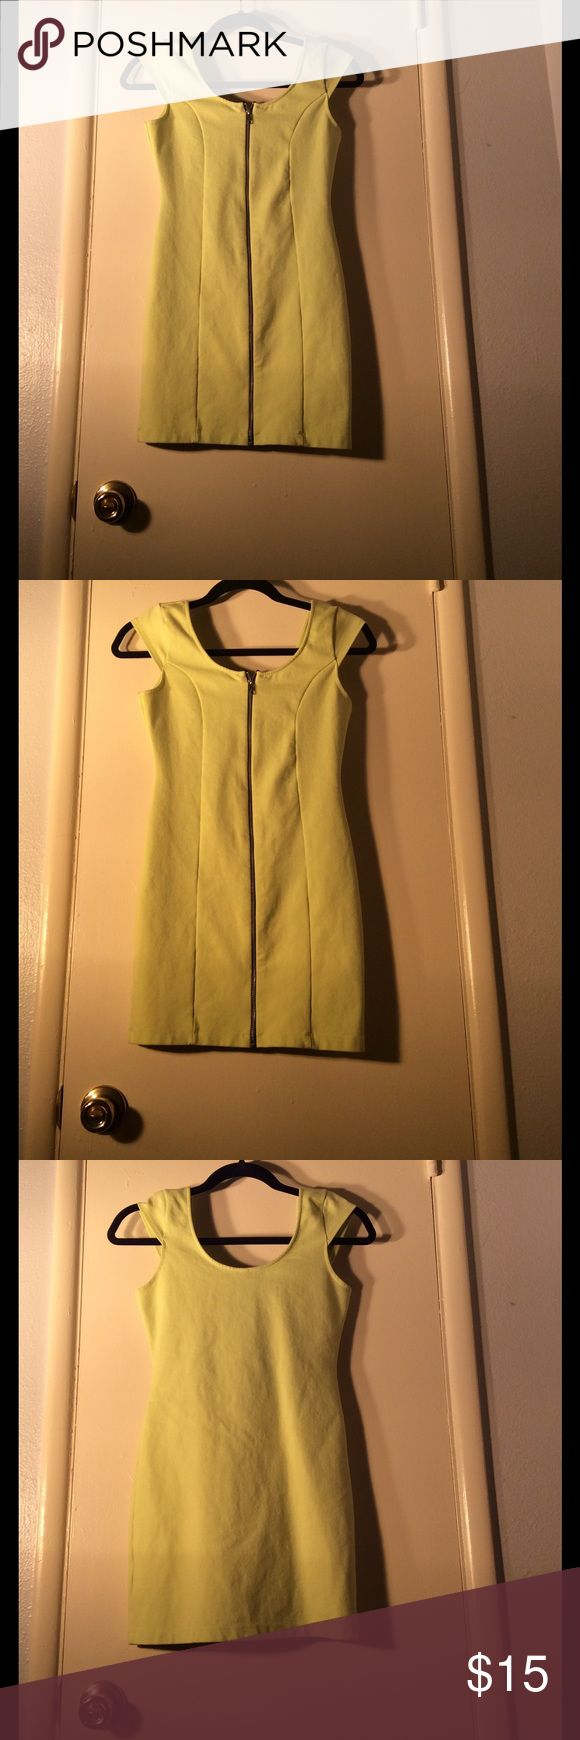 H&M NEON GREEN DRESS NEON GREEN DRESS ZIP UP FRONT THICK STRETCHY MATERIAL WORN TWICE! H&M Dresses Mini